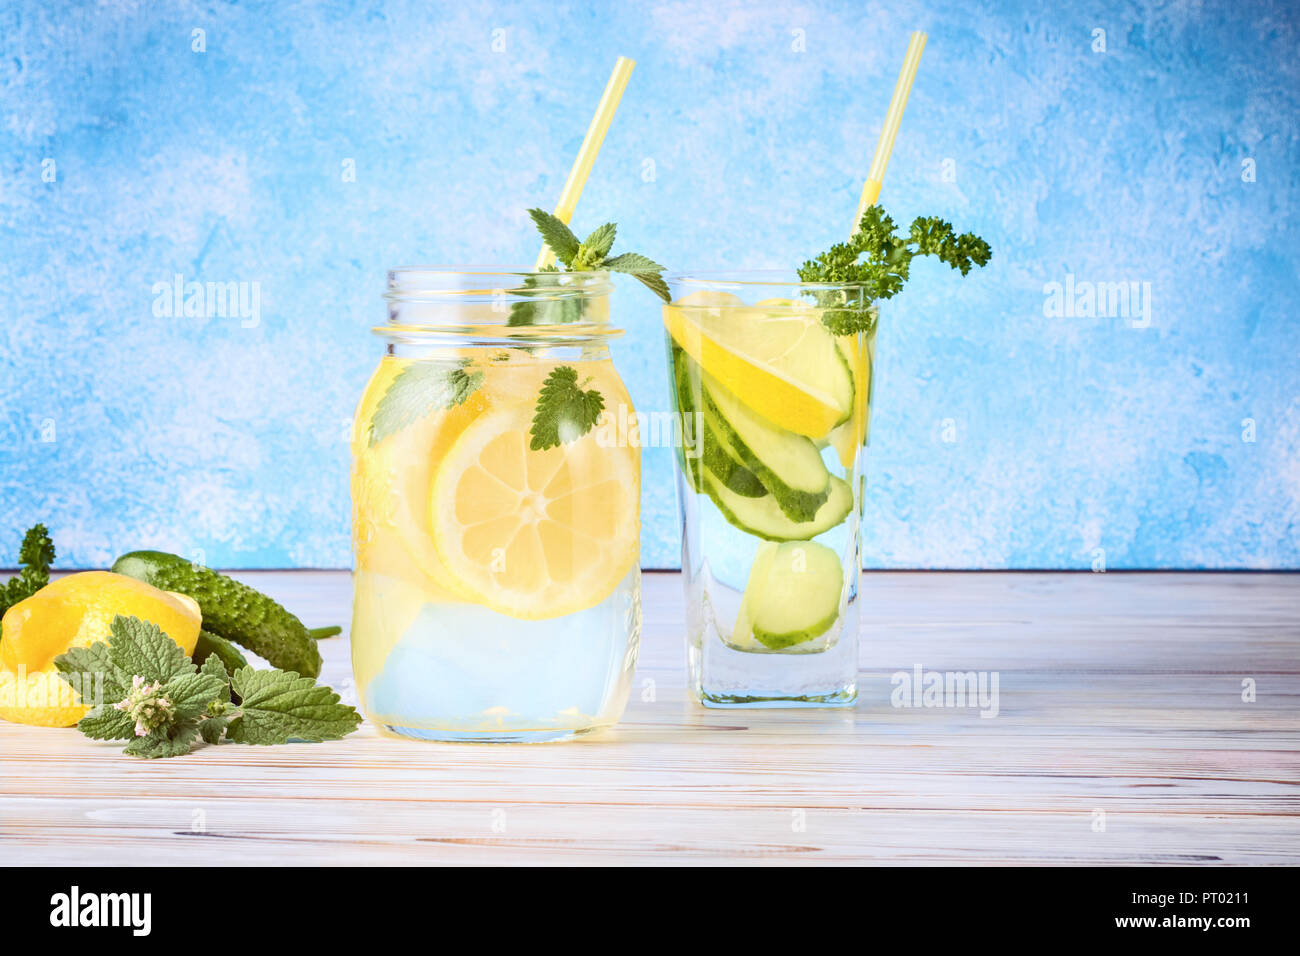 Communication on this topic: Cleansing Cucumber Lemonade, cleansing-cucumber-lemonade/